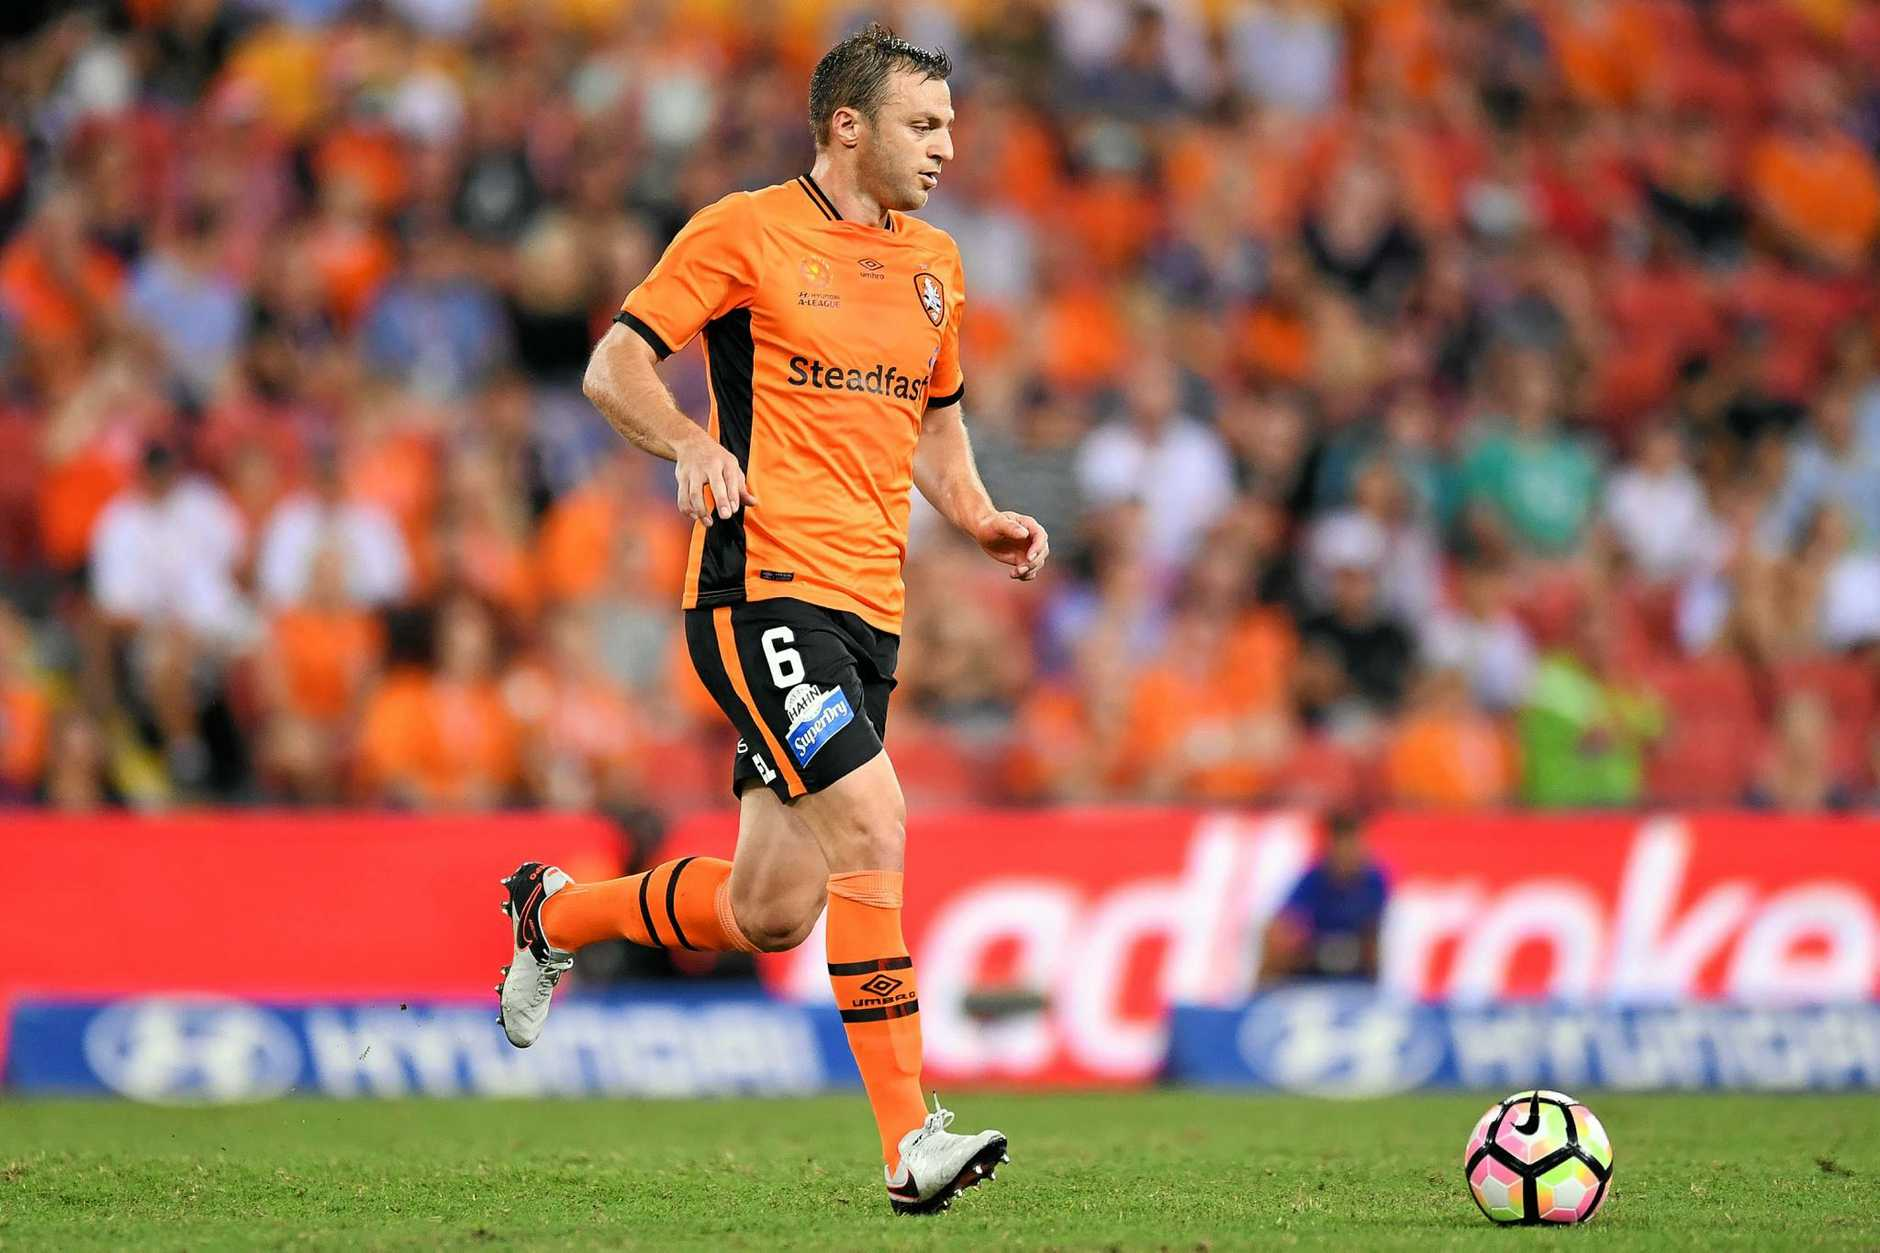 Avram Papadopoulos of the Brisbane Roar.